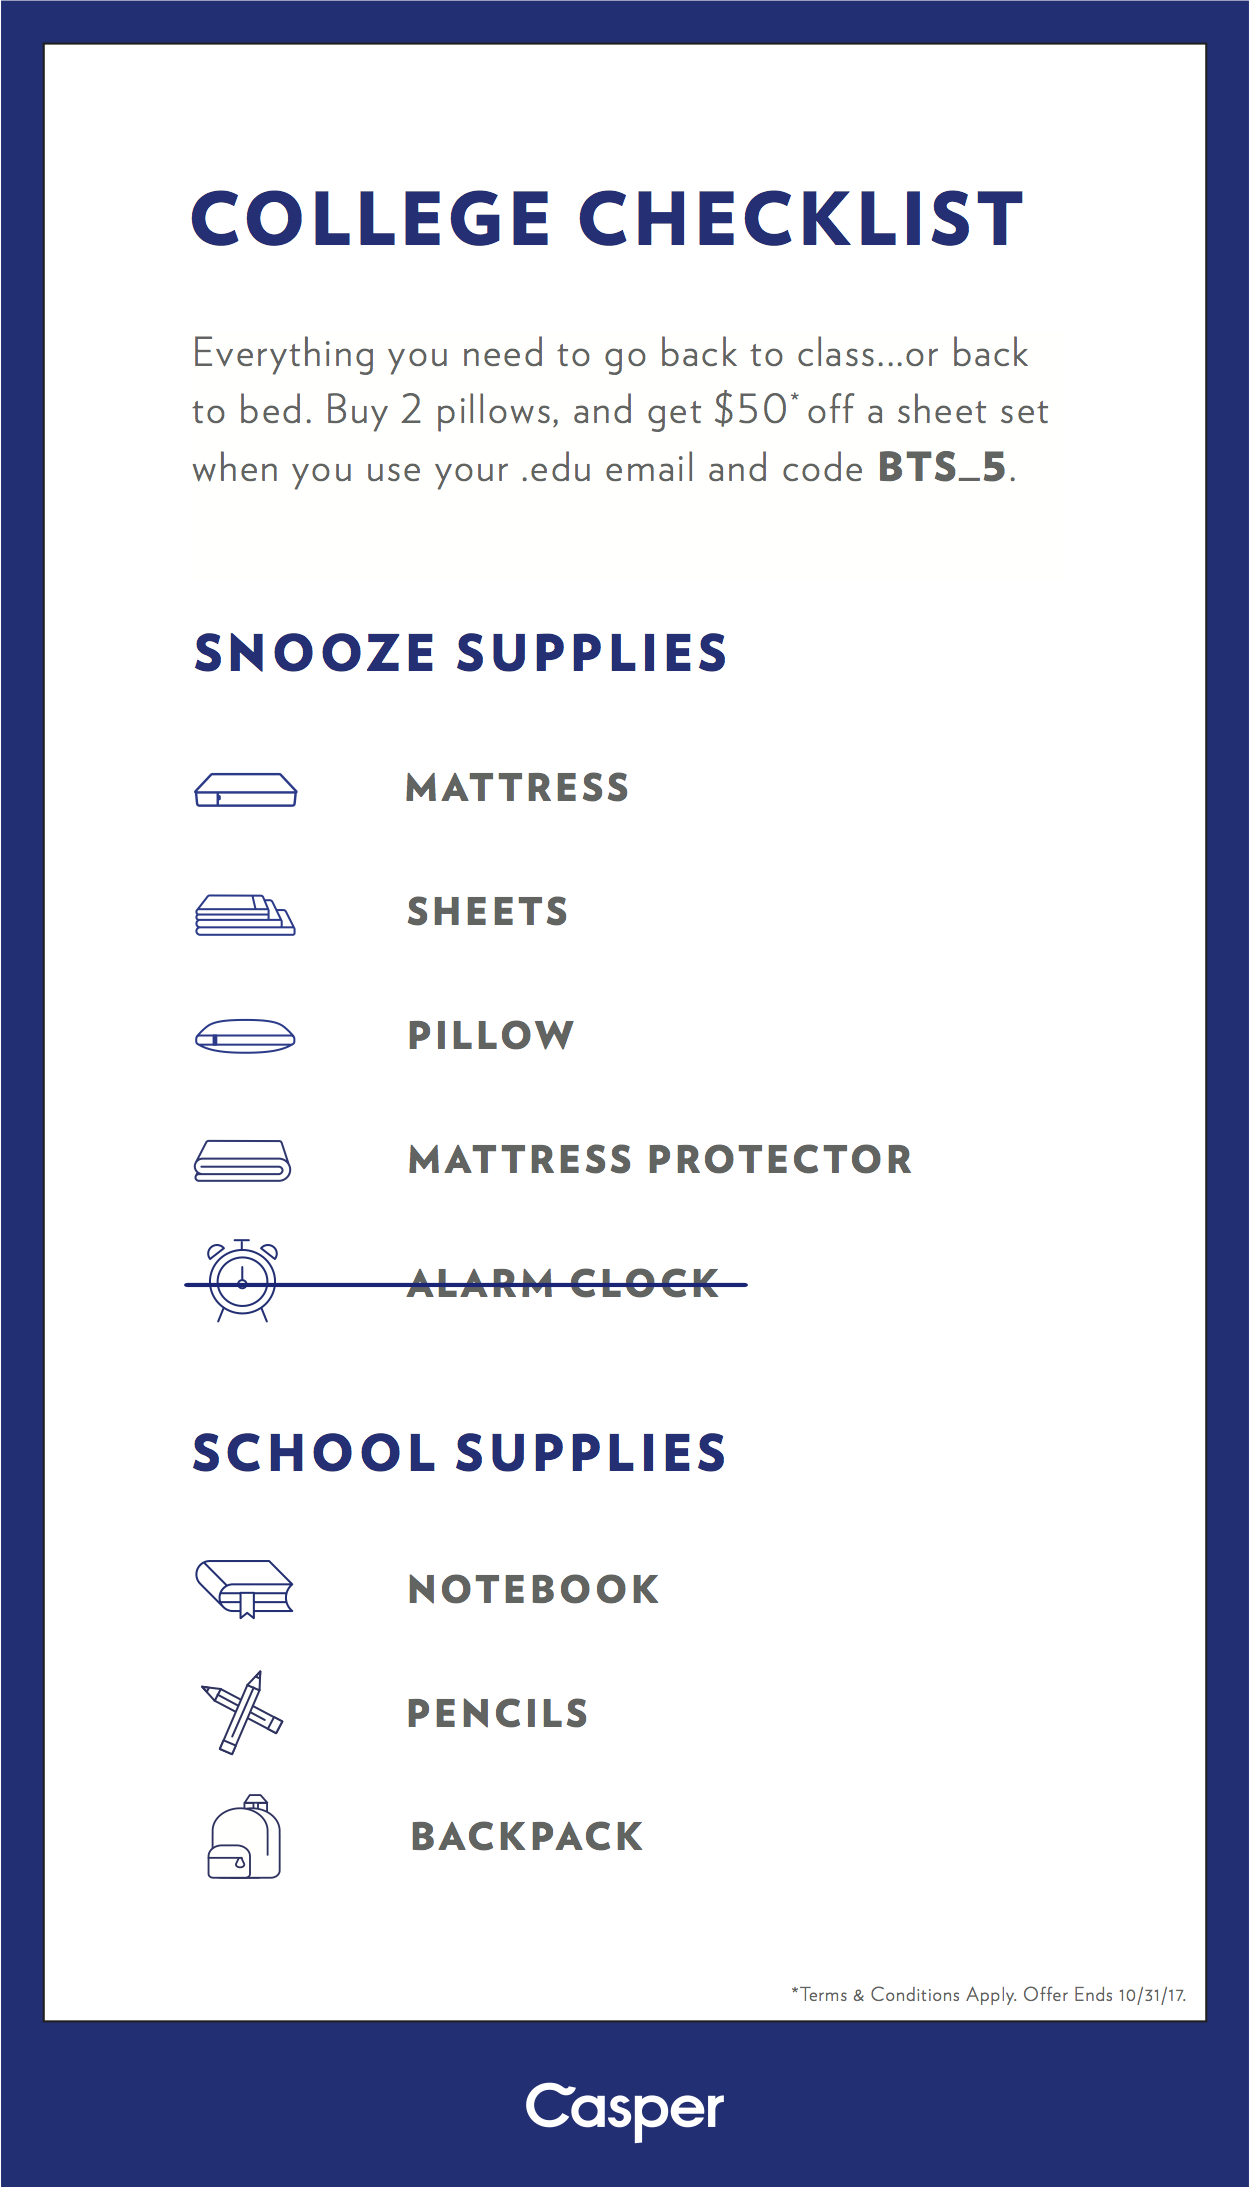 Communication on this topic: A Back-to-School Checklist for Sleep, a-back-to-school-checklist-for-sleep/